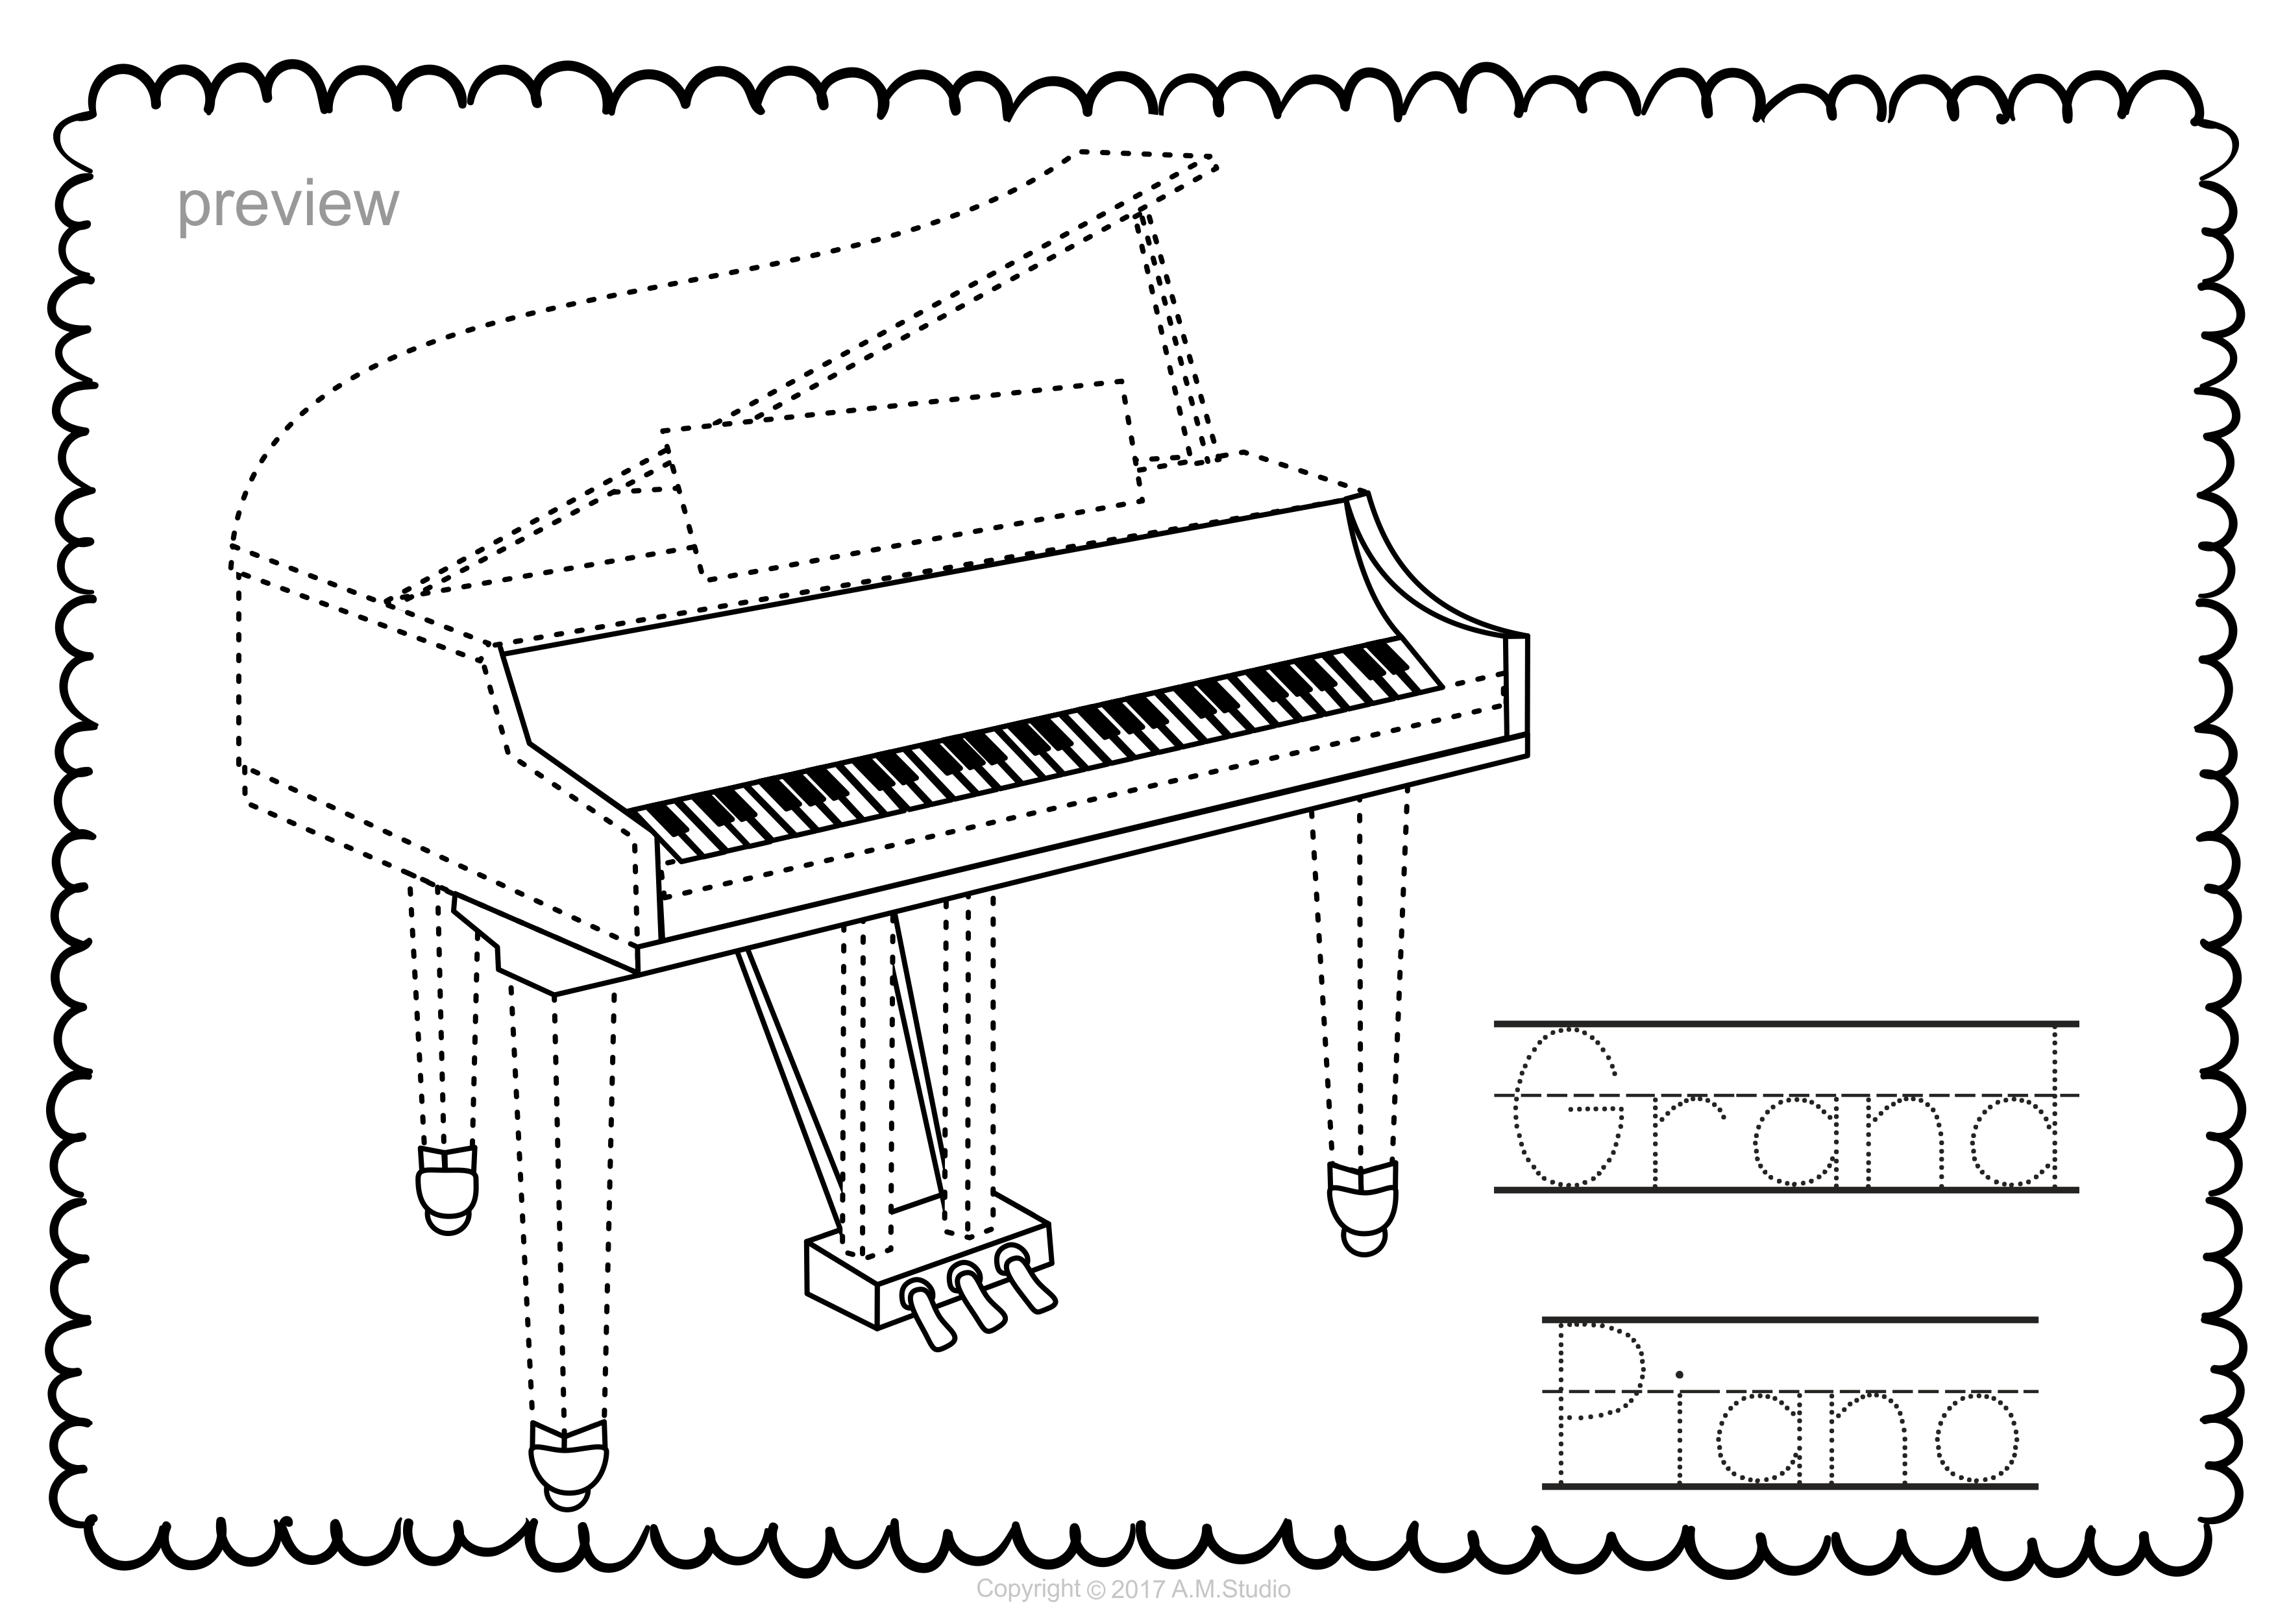 This File In PDF Form Contains 7 Keyboard Musical Instruments Trace And Coloring Pages Each Page An Instrument Picture To Color